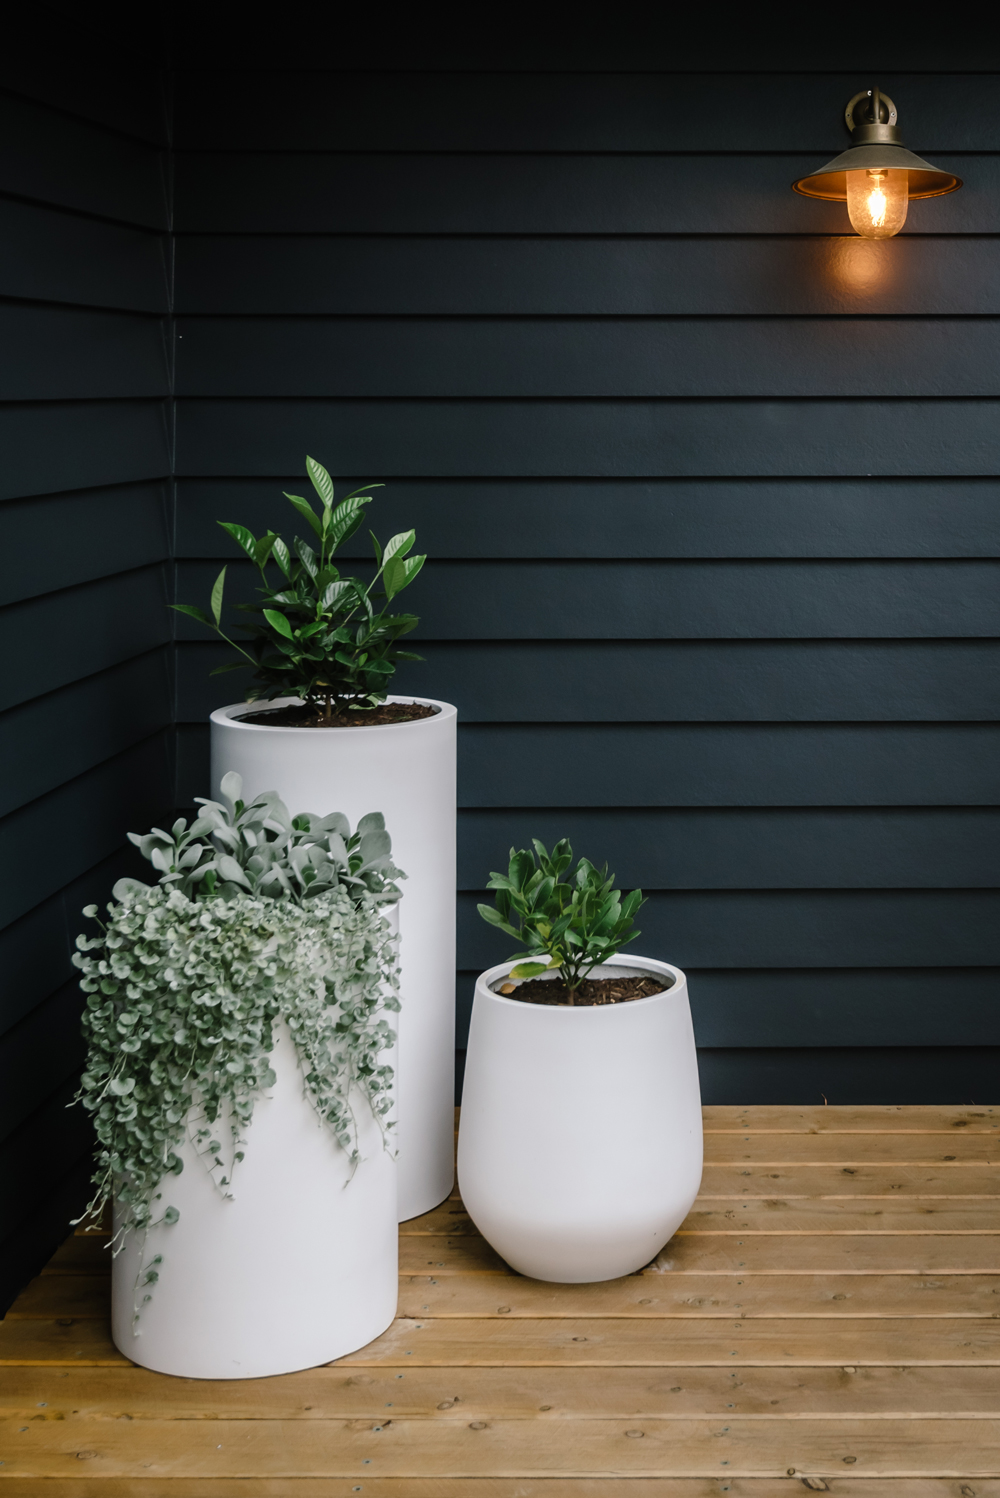 White planter pots from Balcony Garden on front porch